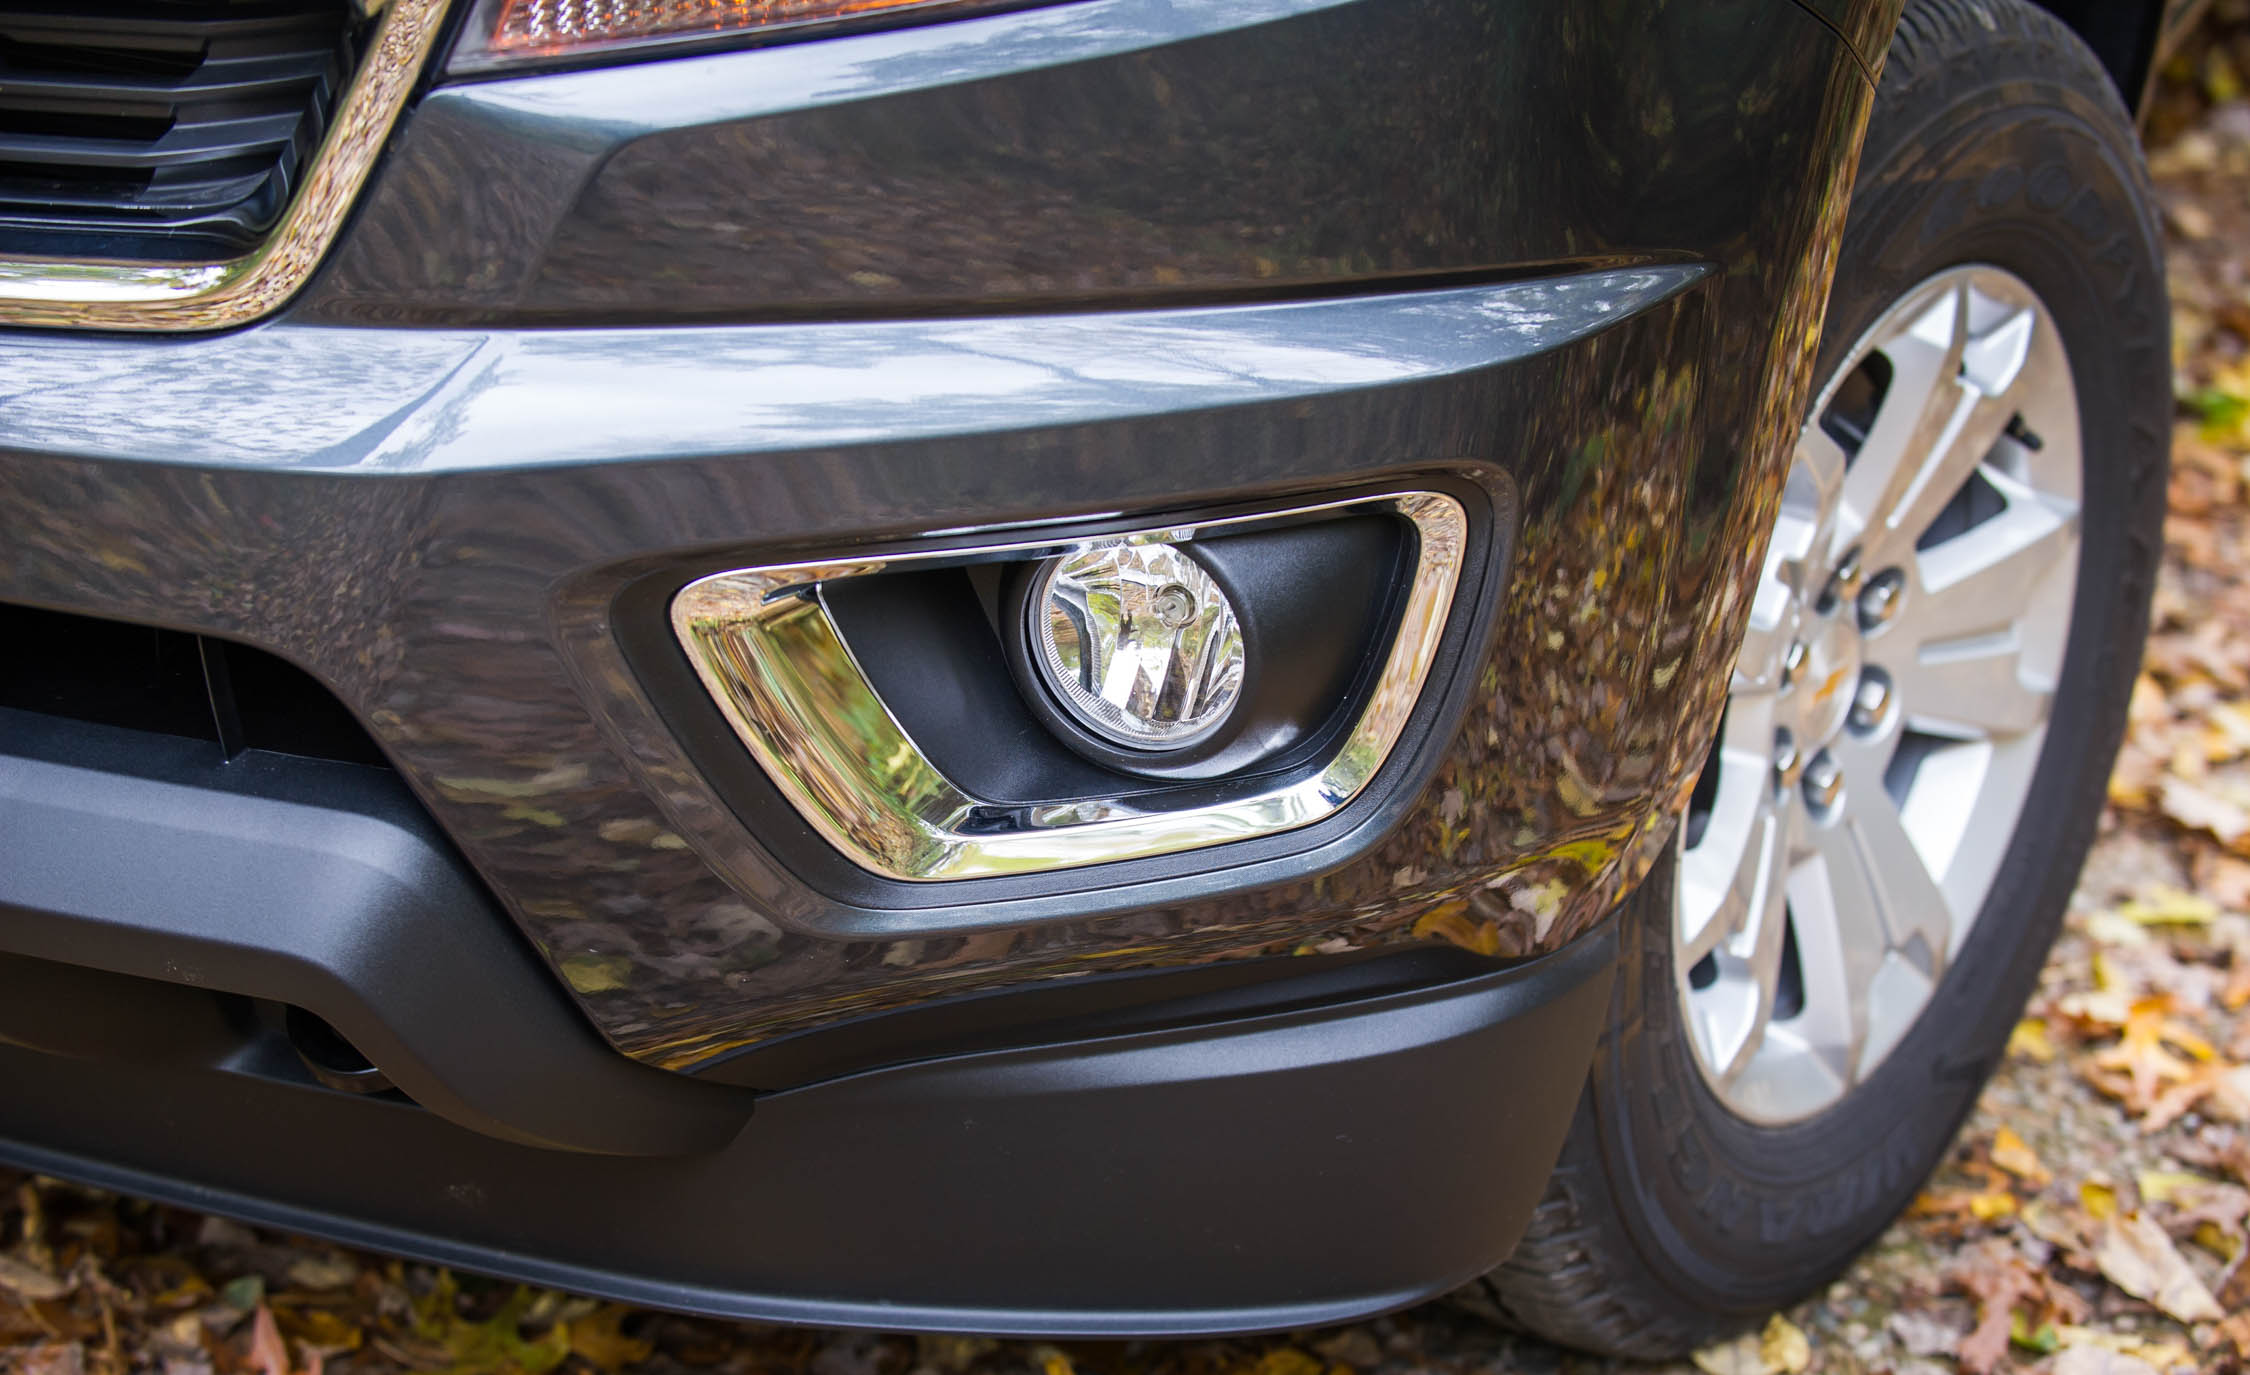 2017 Chevrolet Colorado Exterior View Foglamp (View 30 of 41)